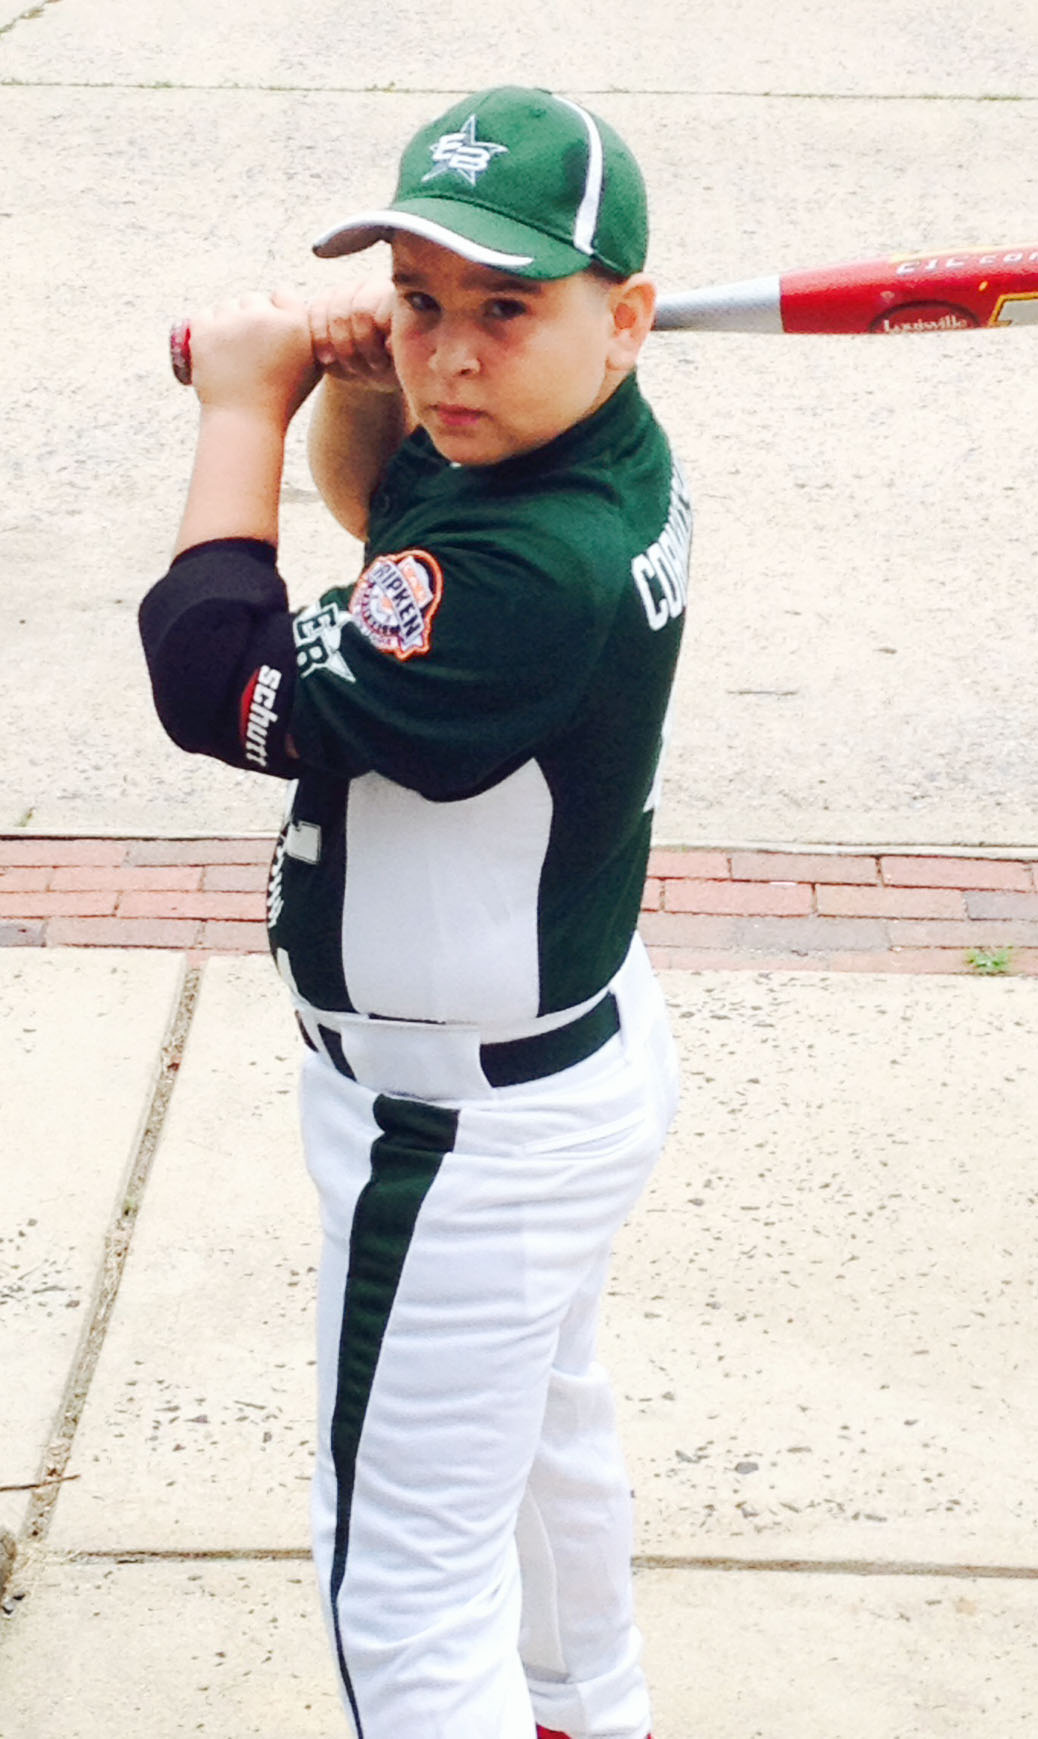 John Mario Represents East Brunswick Baseball League 10 U Travel All-Star Team